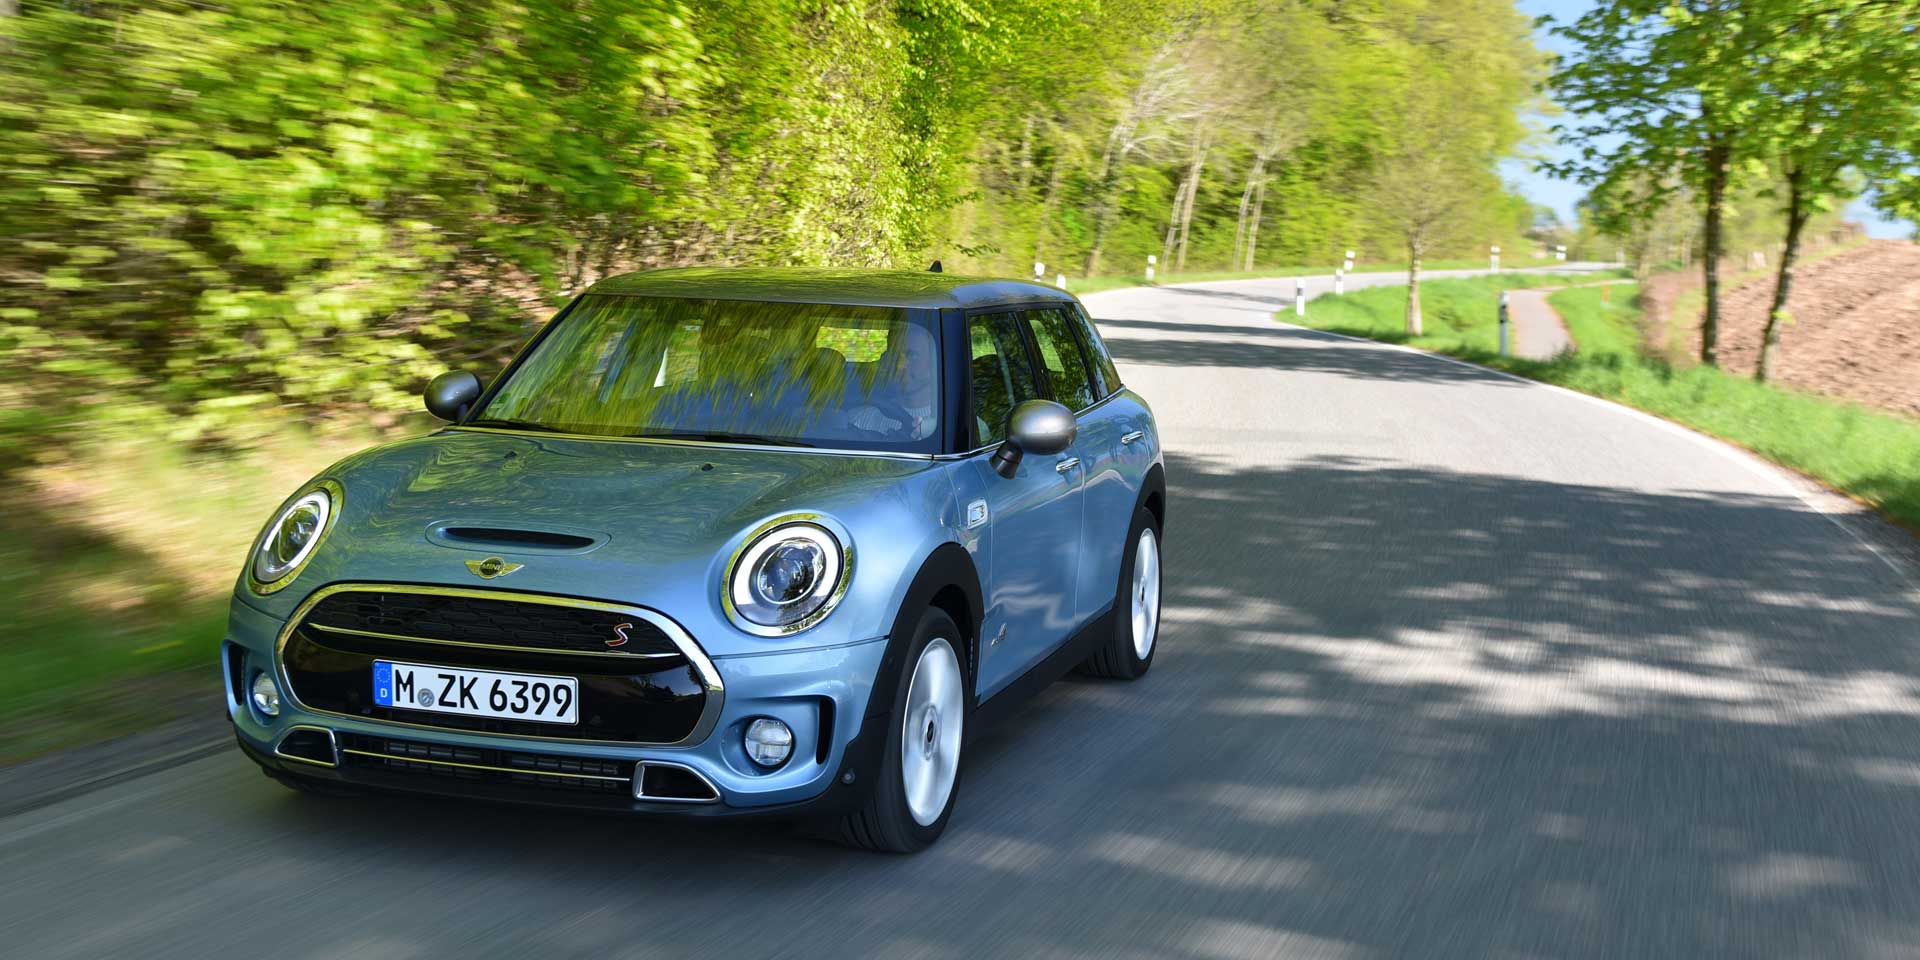 2017 Mini Clubman S Extended Length Hatchback The Adds A High Performance John Cooper Works Model For